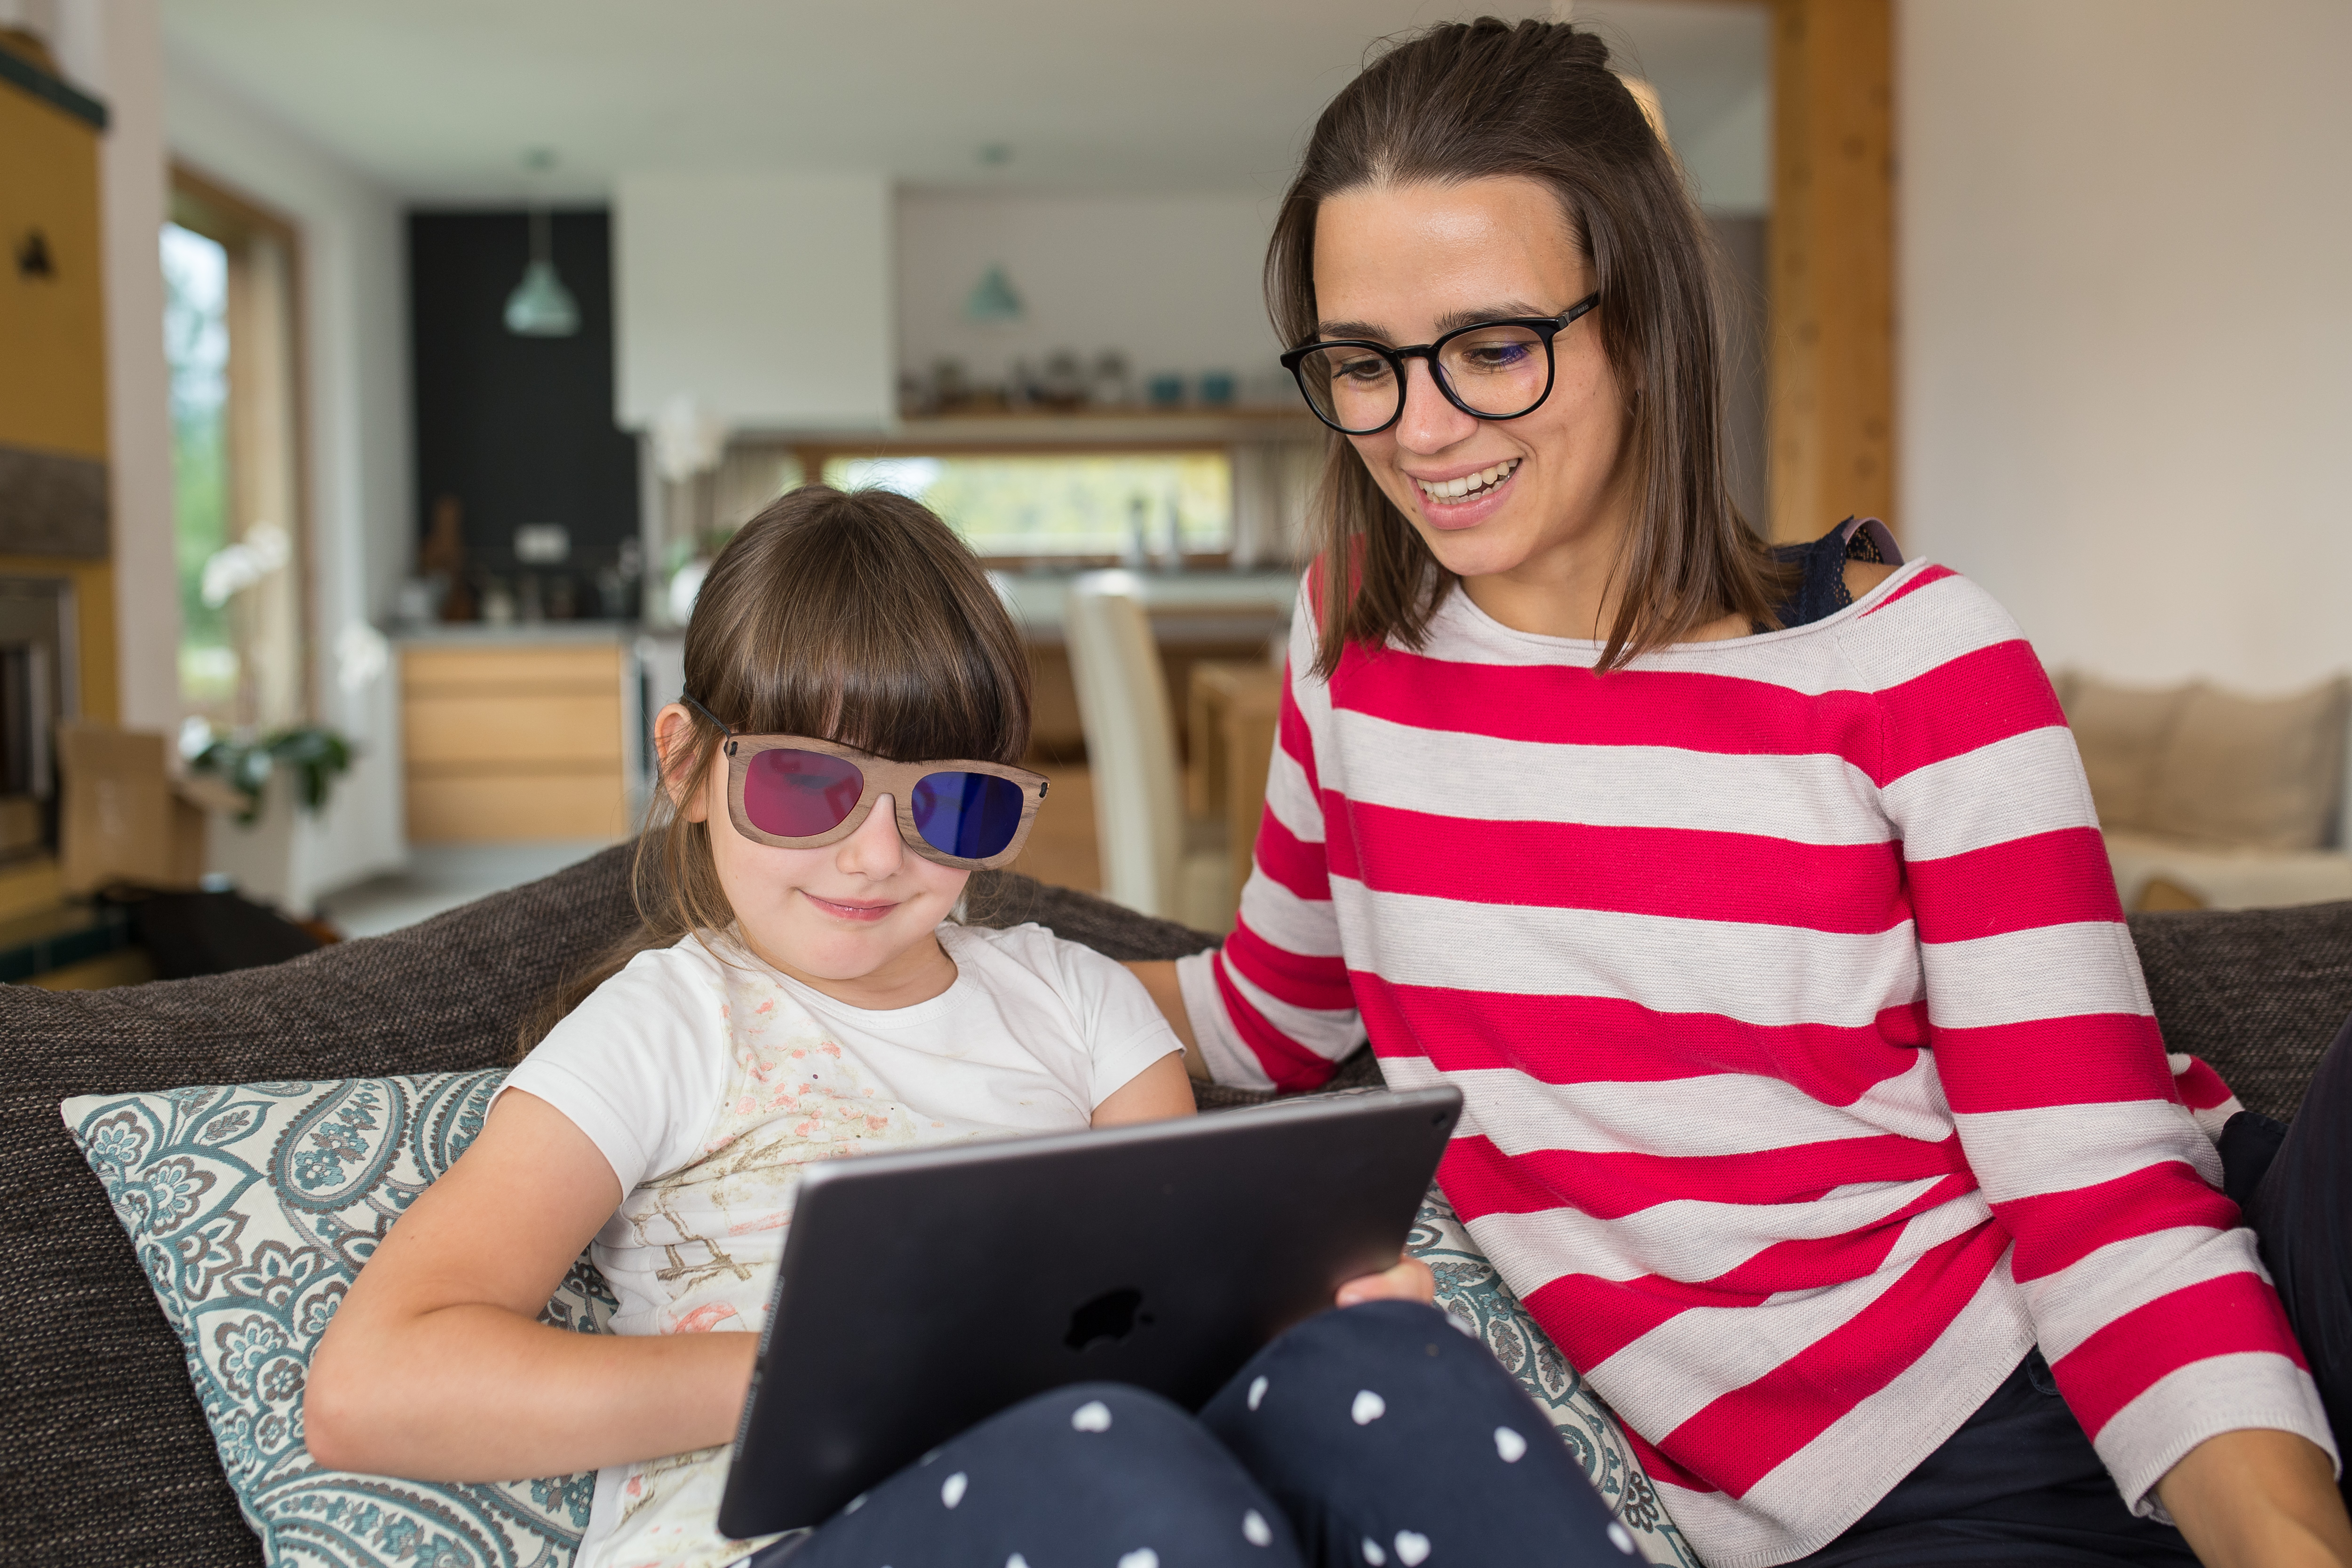 Survey highlights link between screen time, dry eye